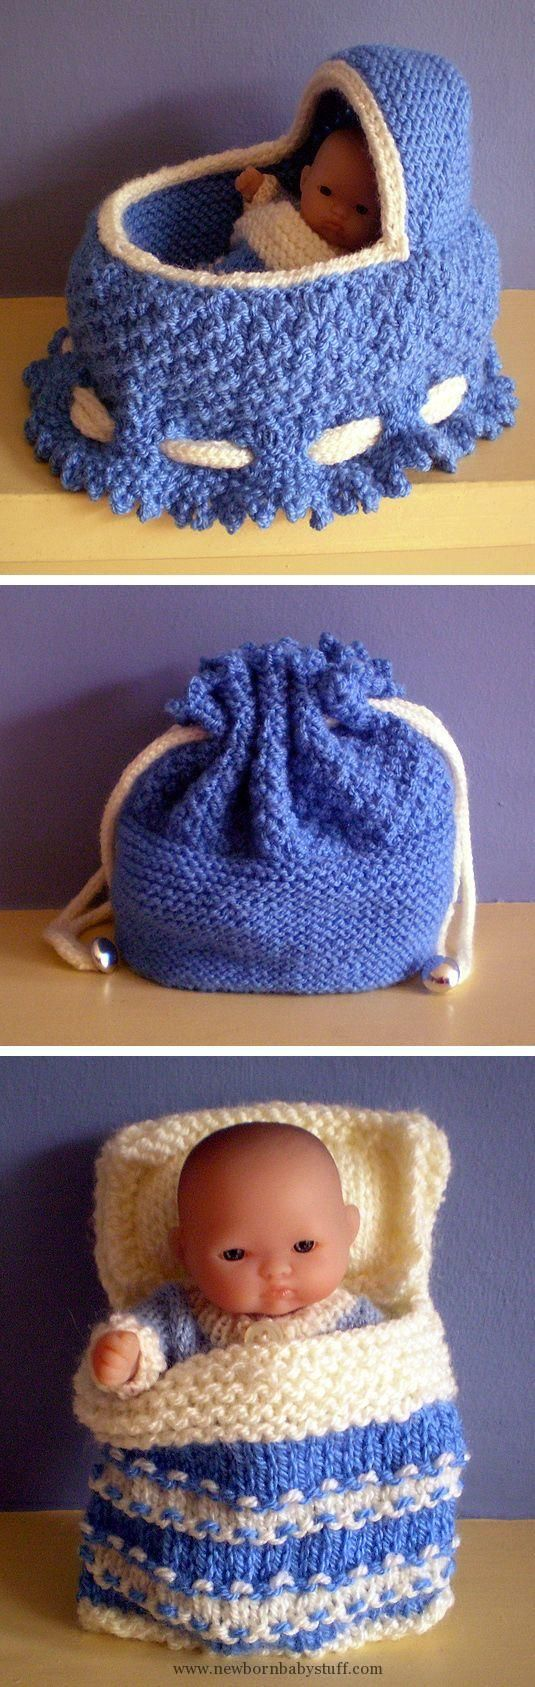 Baby Knitting Patterns Free Knitting Pattern for Doll Cradle Bag - The sides of Fra...